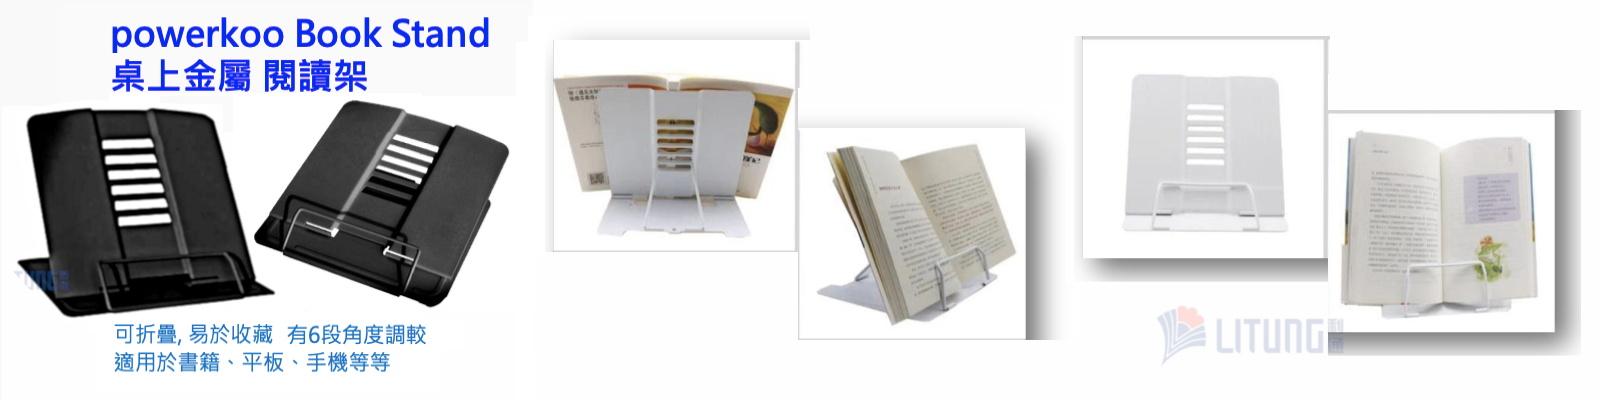 powerkoo Banner RA web LT811L Book stand luseage logo1600x400